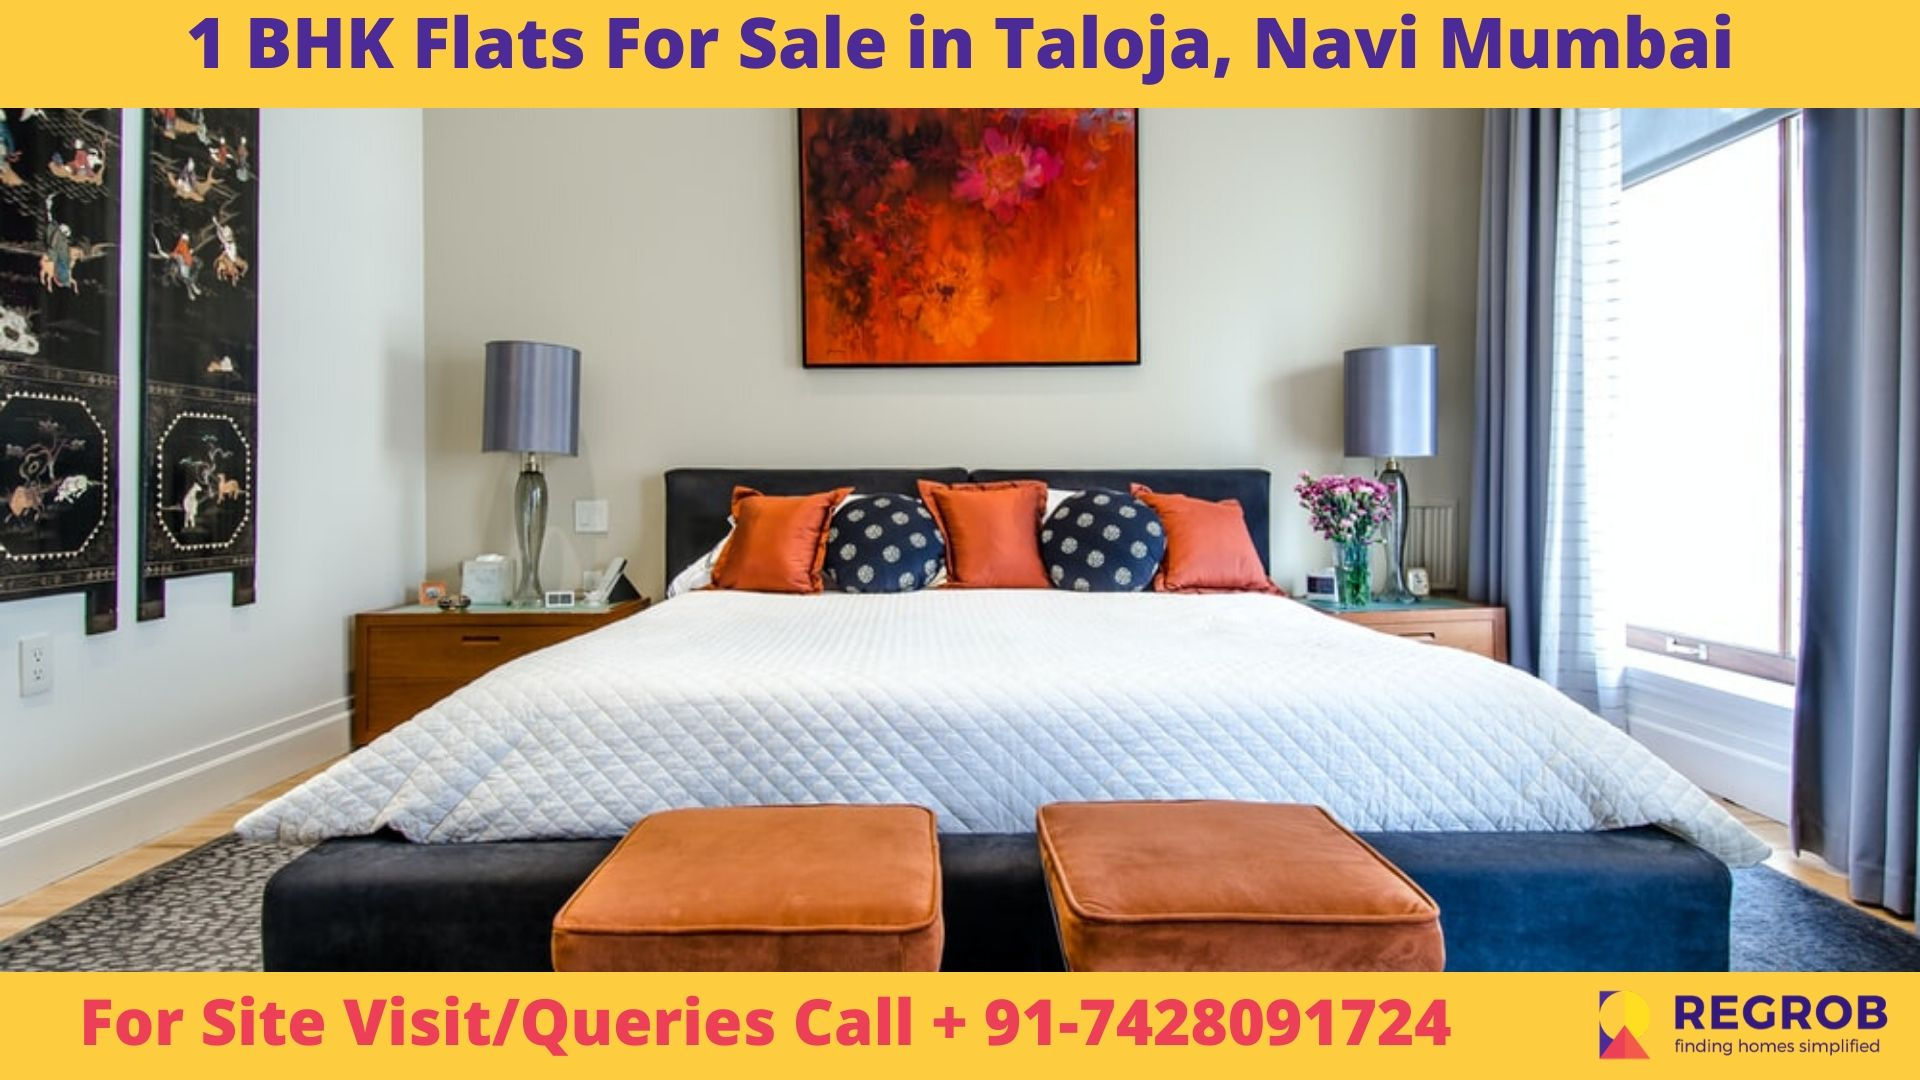 1 Bhk Flats In Taloja Navi Mumbai Best Properties For Sale